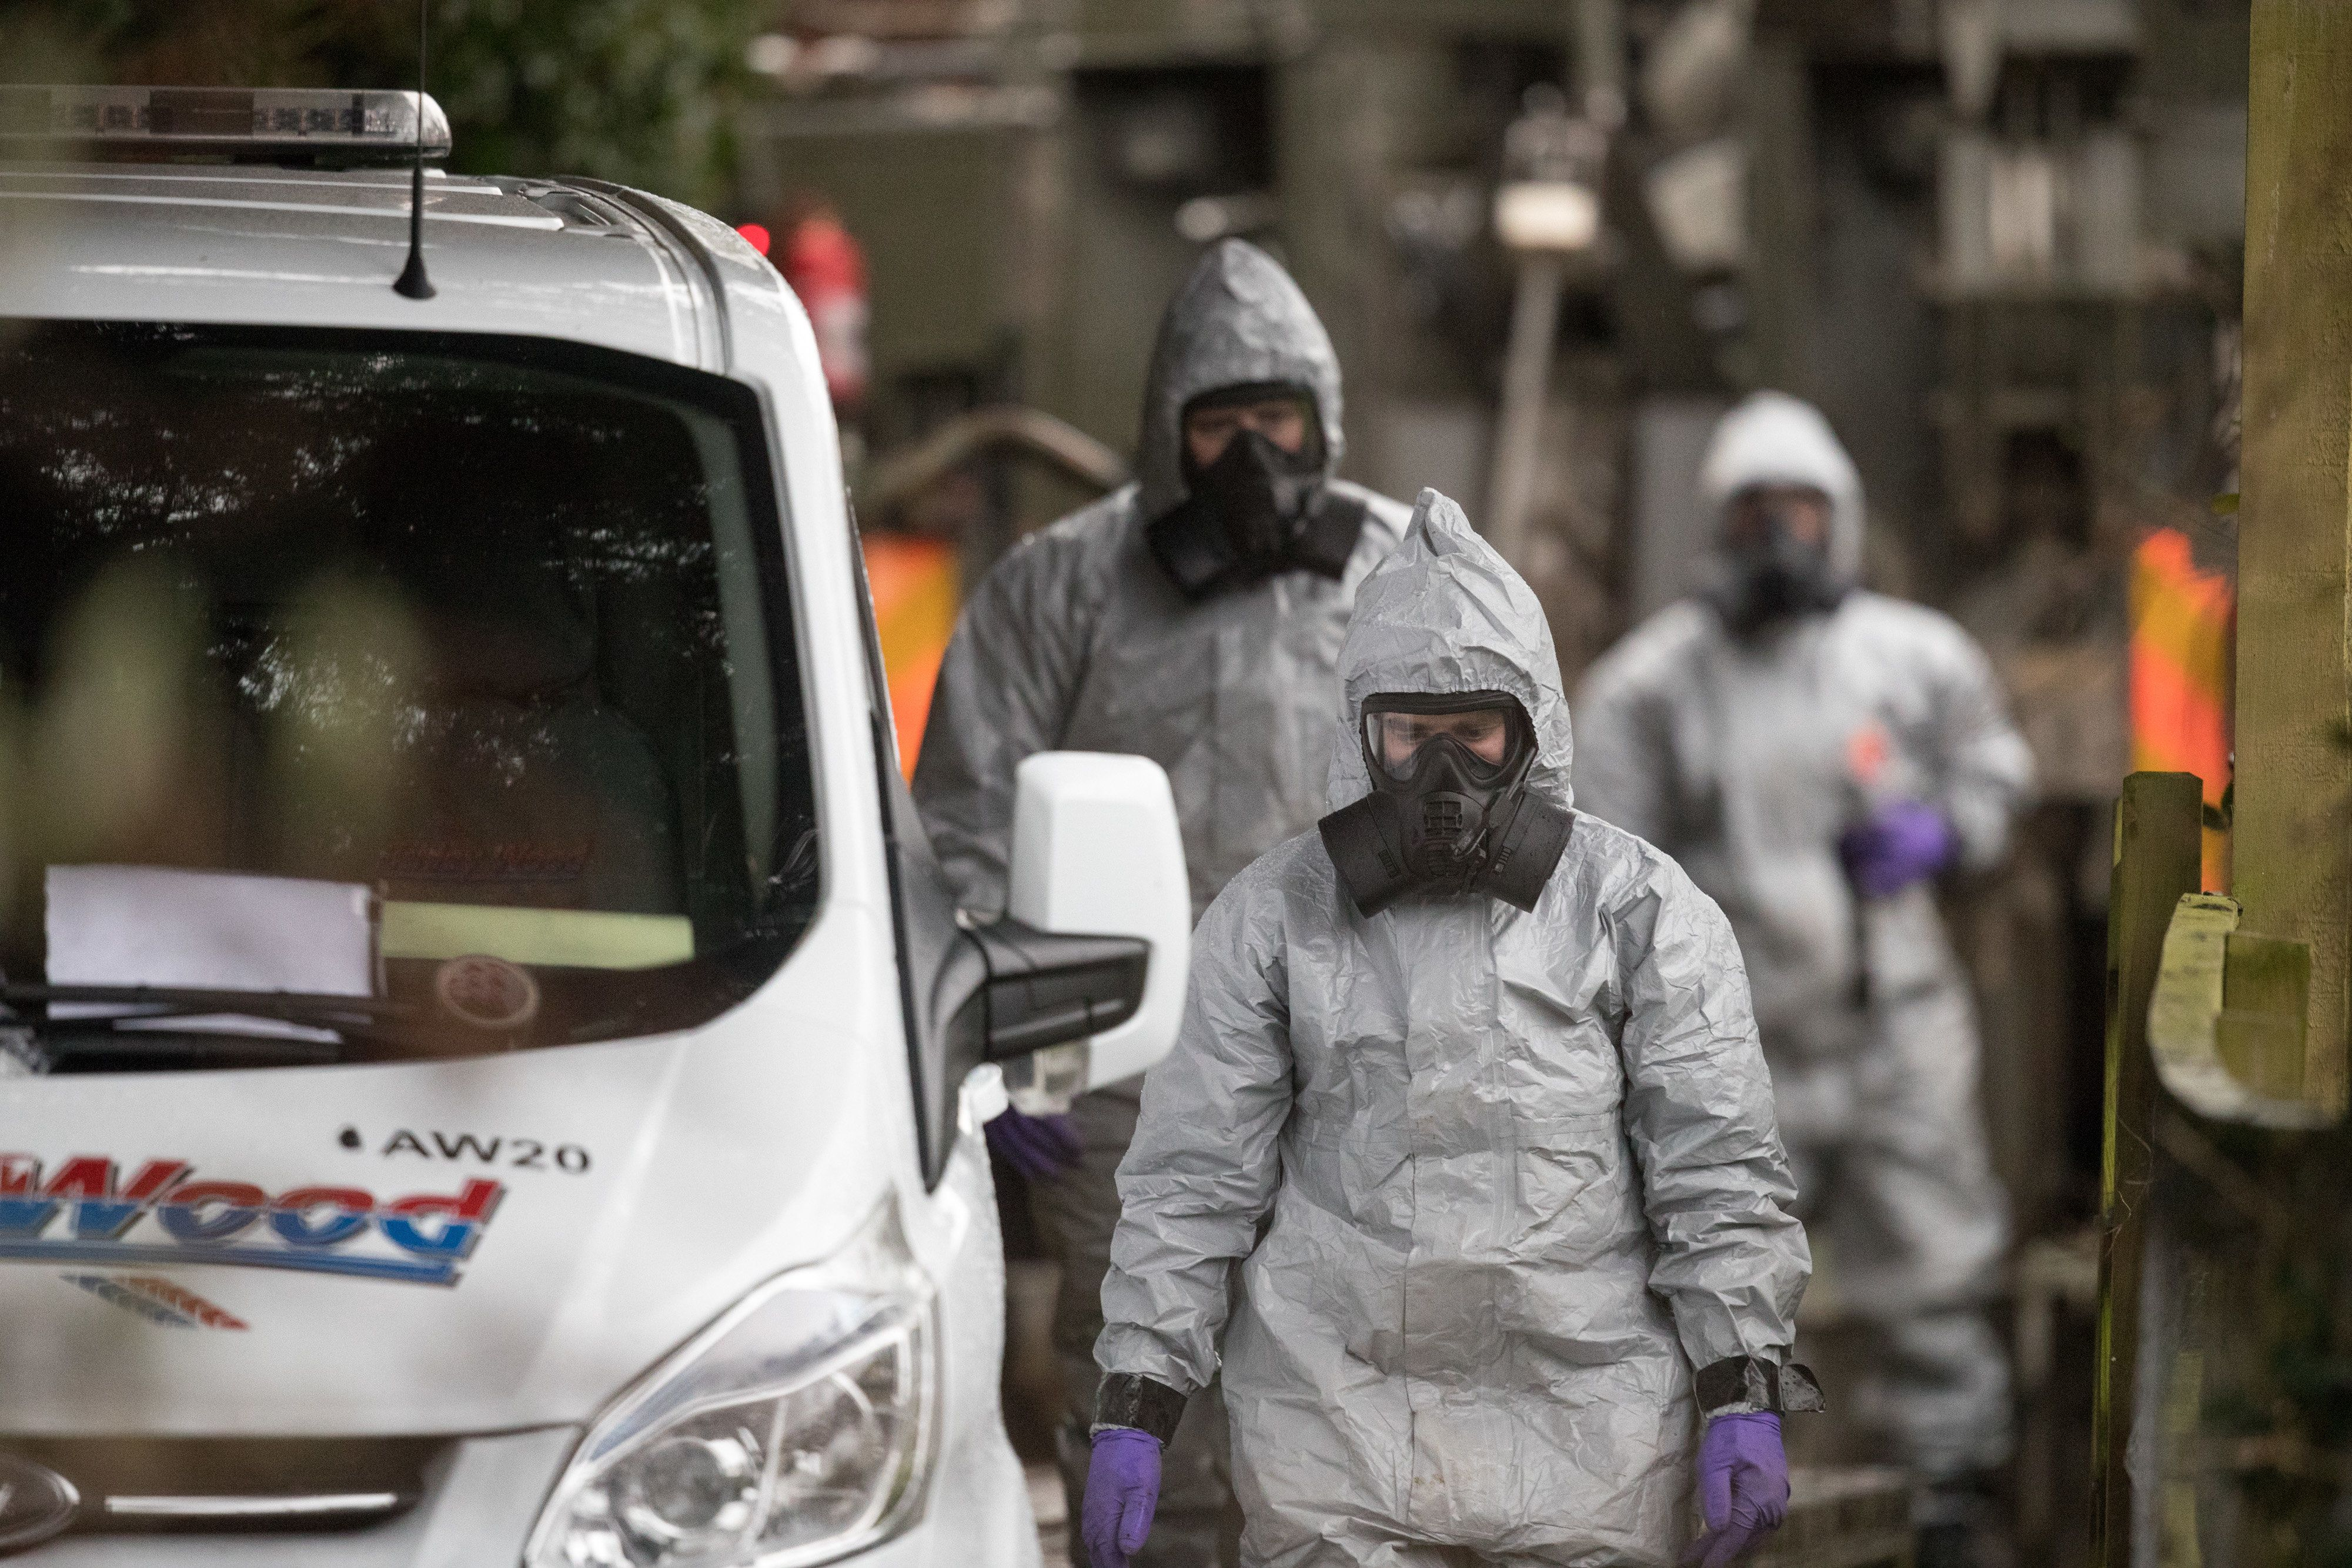 What Is Novichok? Ex-Spy Poisoned With Rare Russia-Linked Nerve Agent | HuffPost